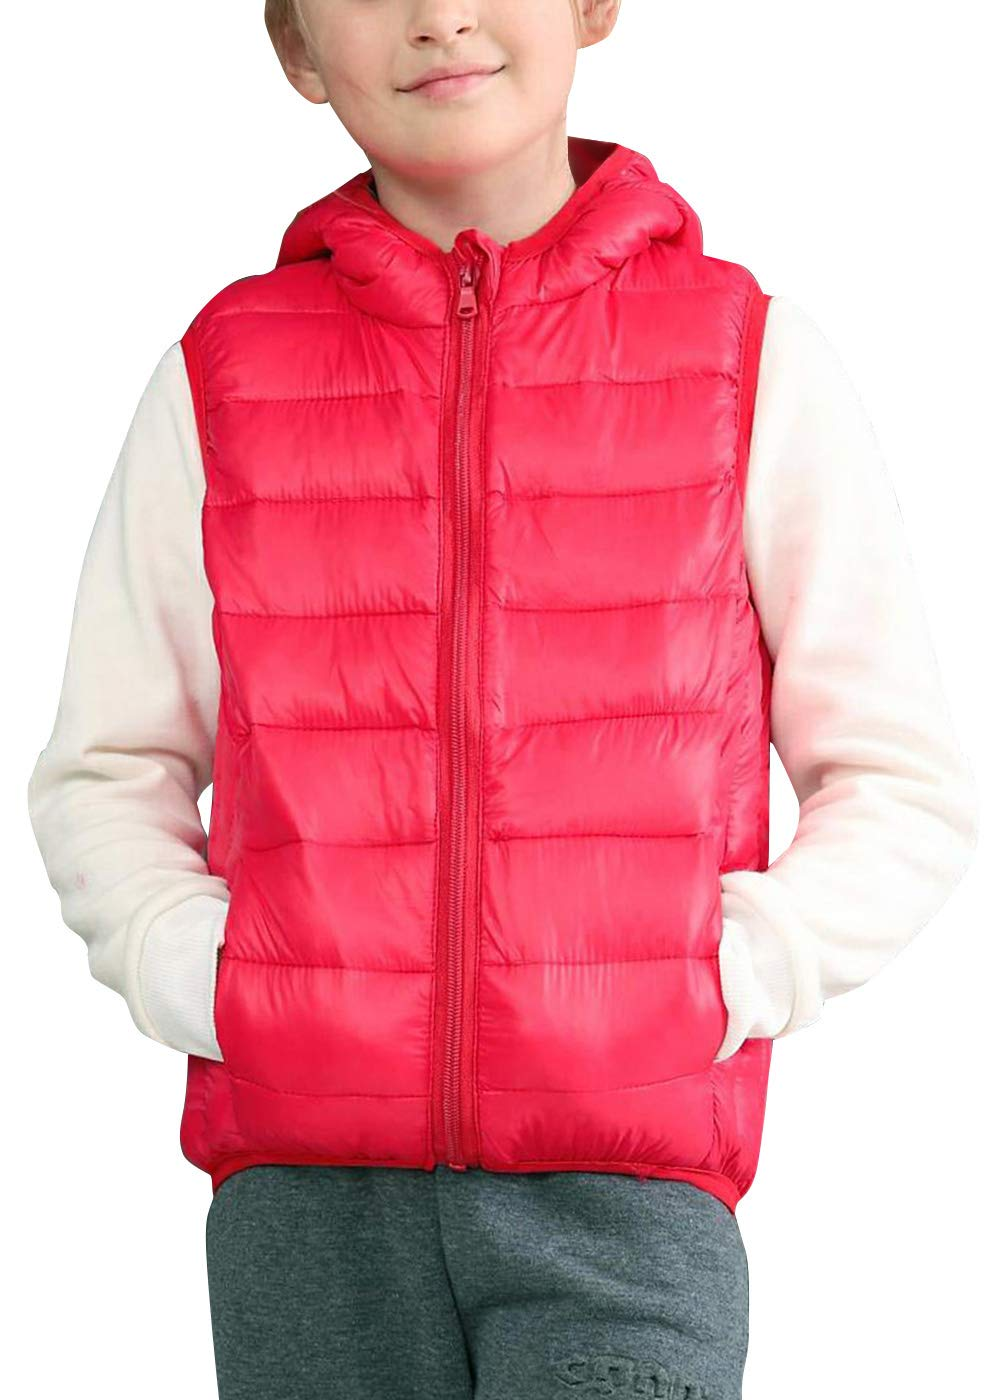 liangfeng Baby Boys Girls Kids' Outerwear Vest Ultra Light Thicken Hooded Down Jacket Red